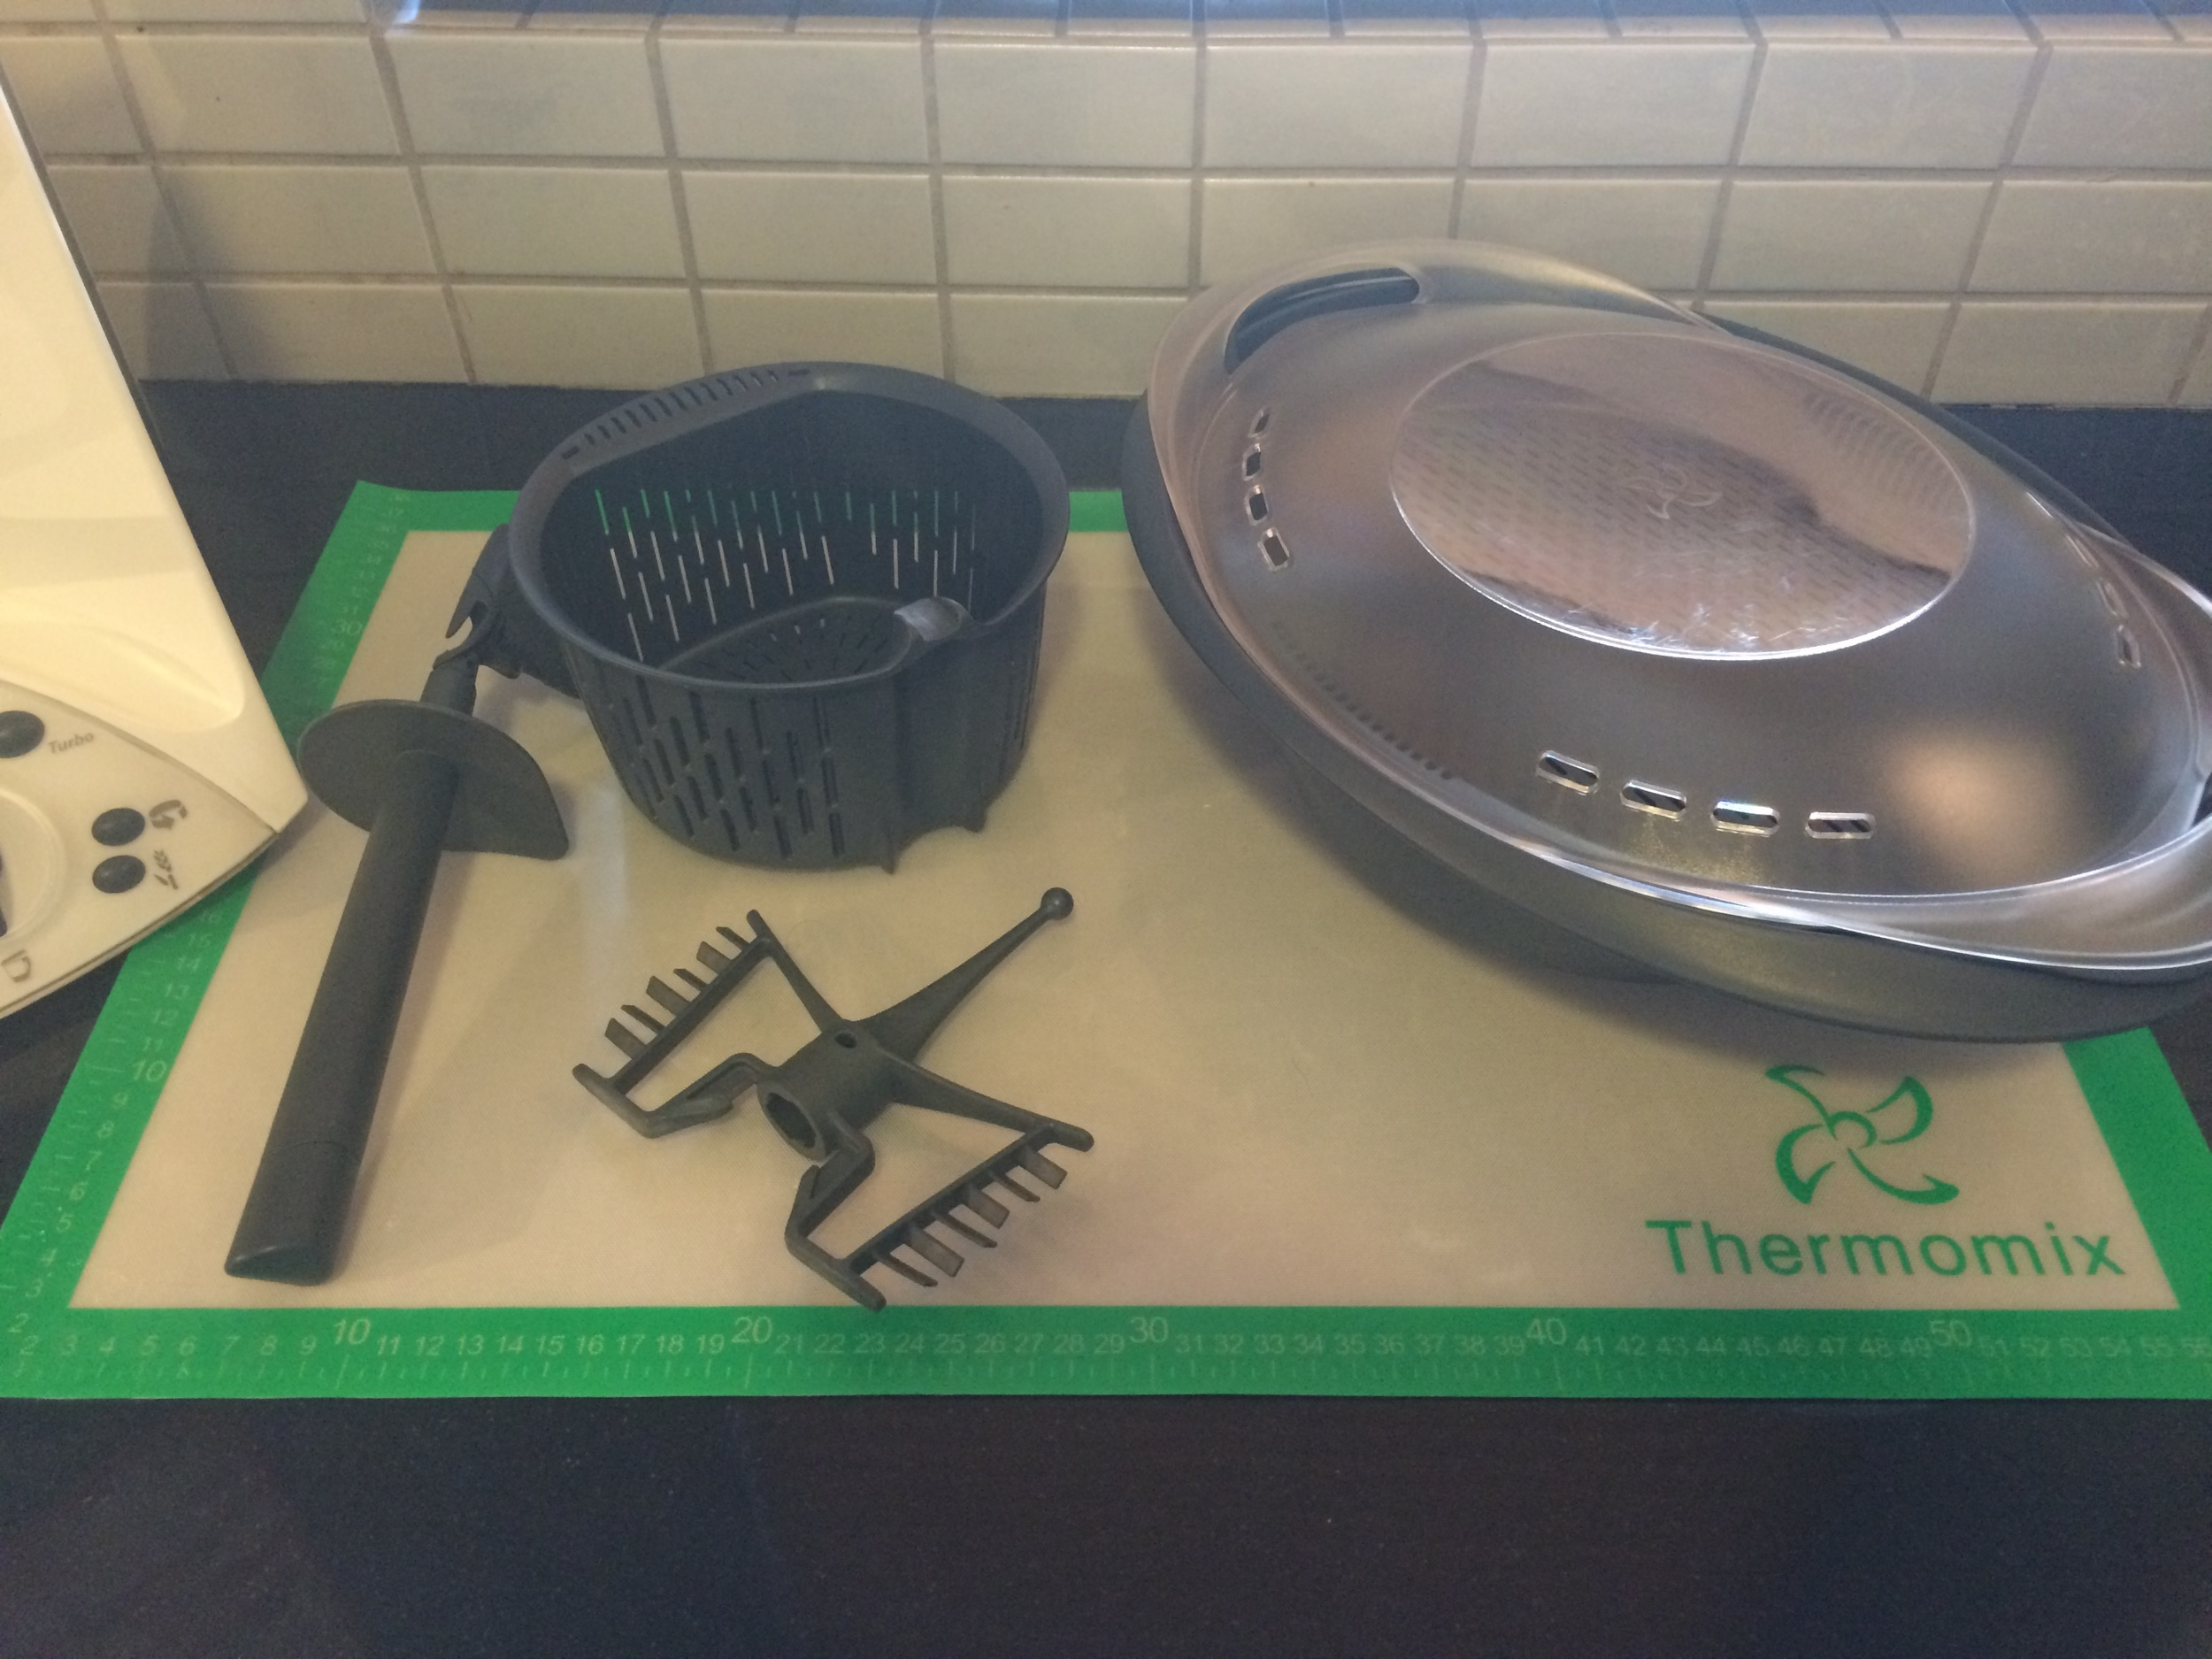 Thermomix-full set 2.jpg